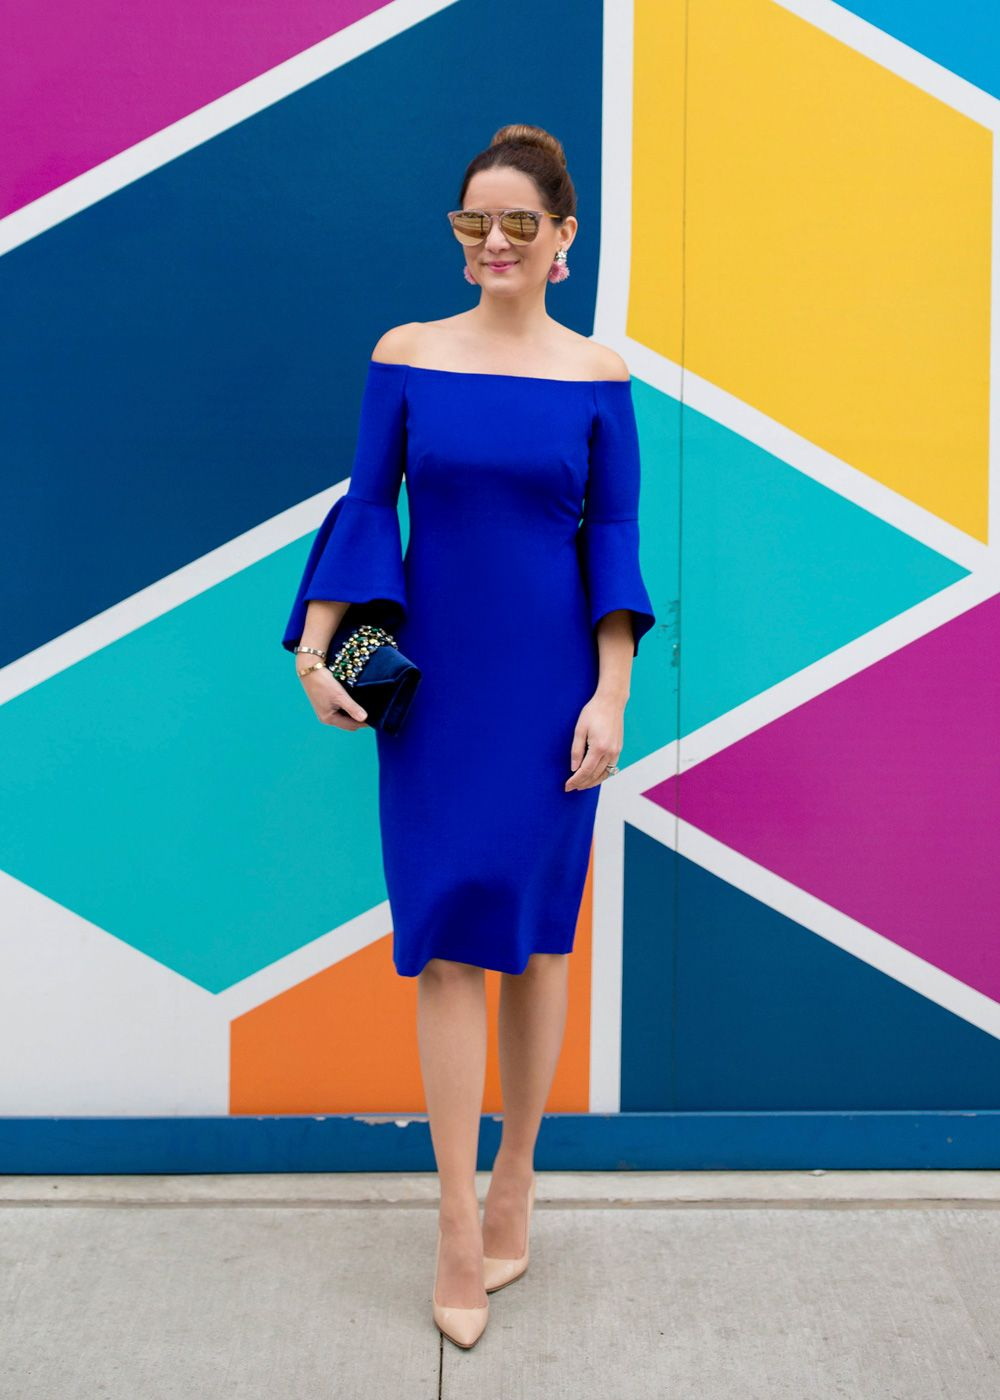 a1dff9e039aa Jennifer Lake Style Charade in a cobalt blue off shoulder bell sleeve dress,  velvet and crystal clutch, BaubleBar fringe earrings at a colorful Chicago  wall